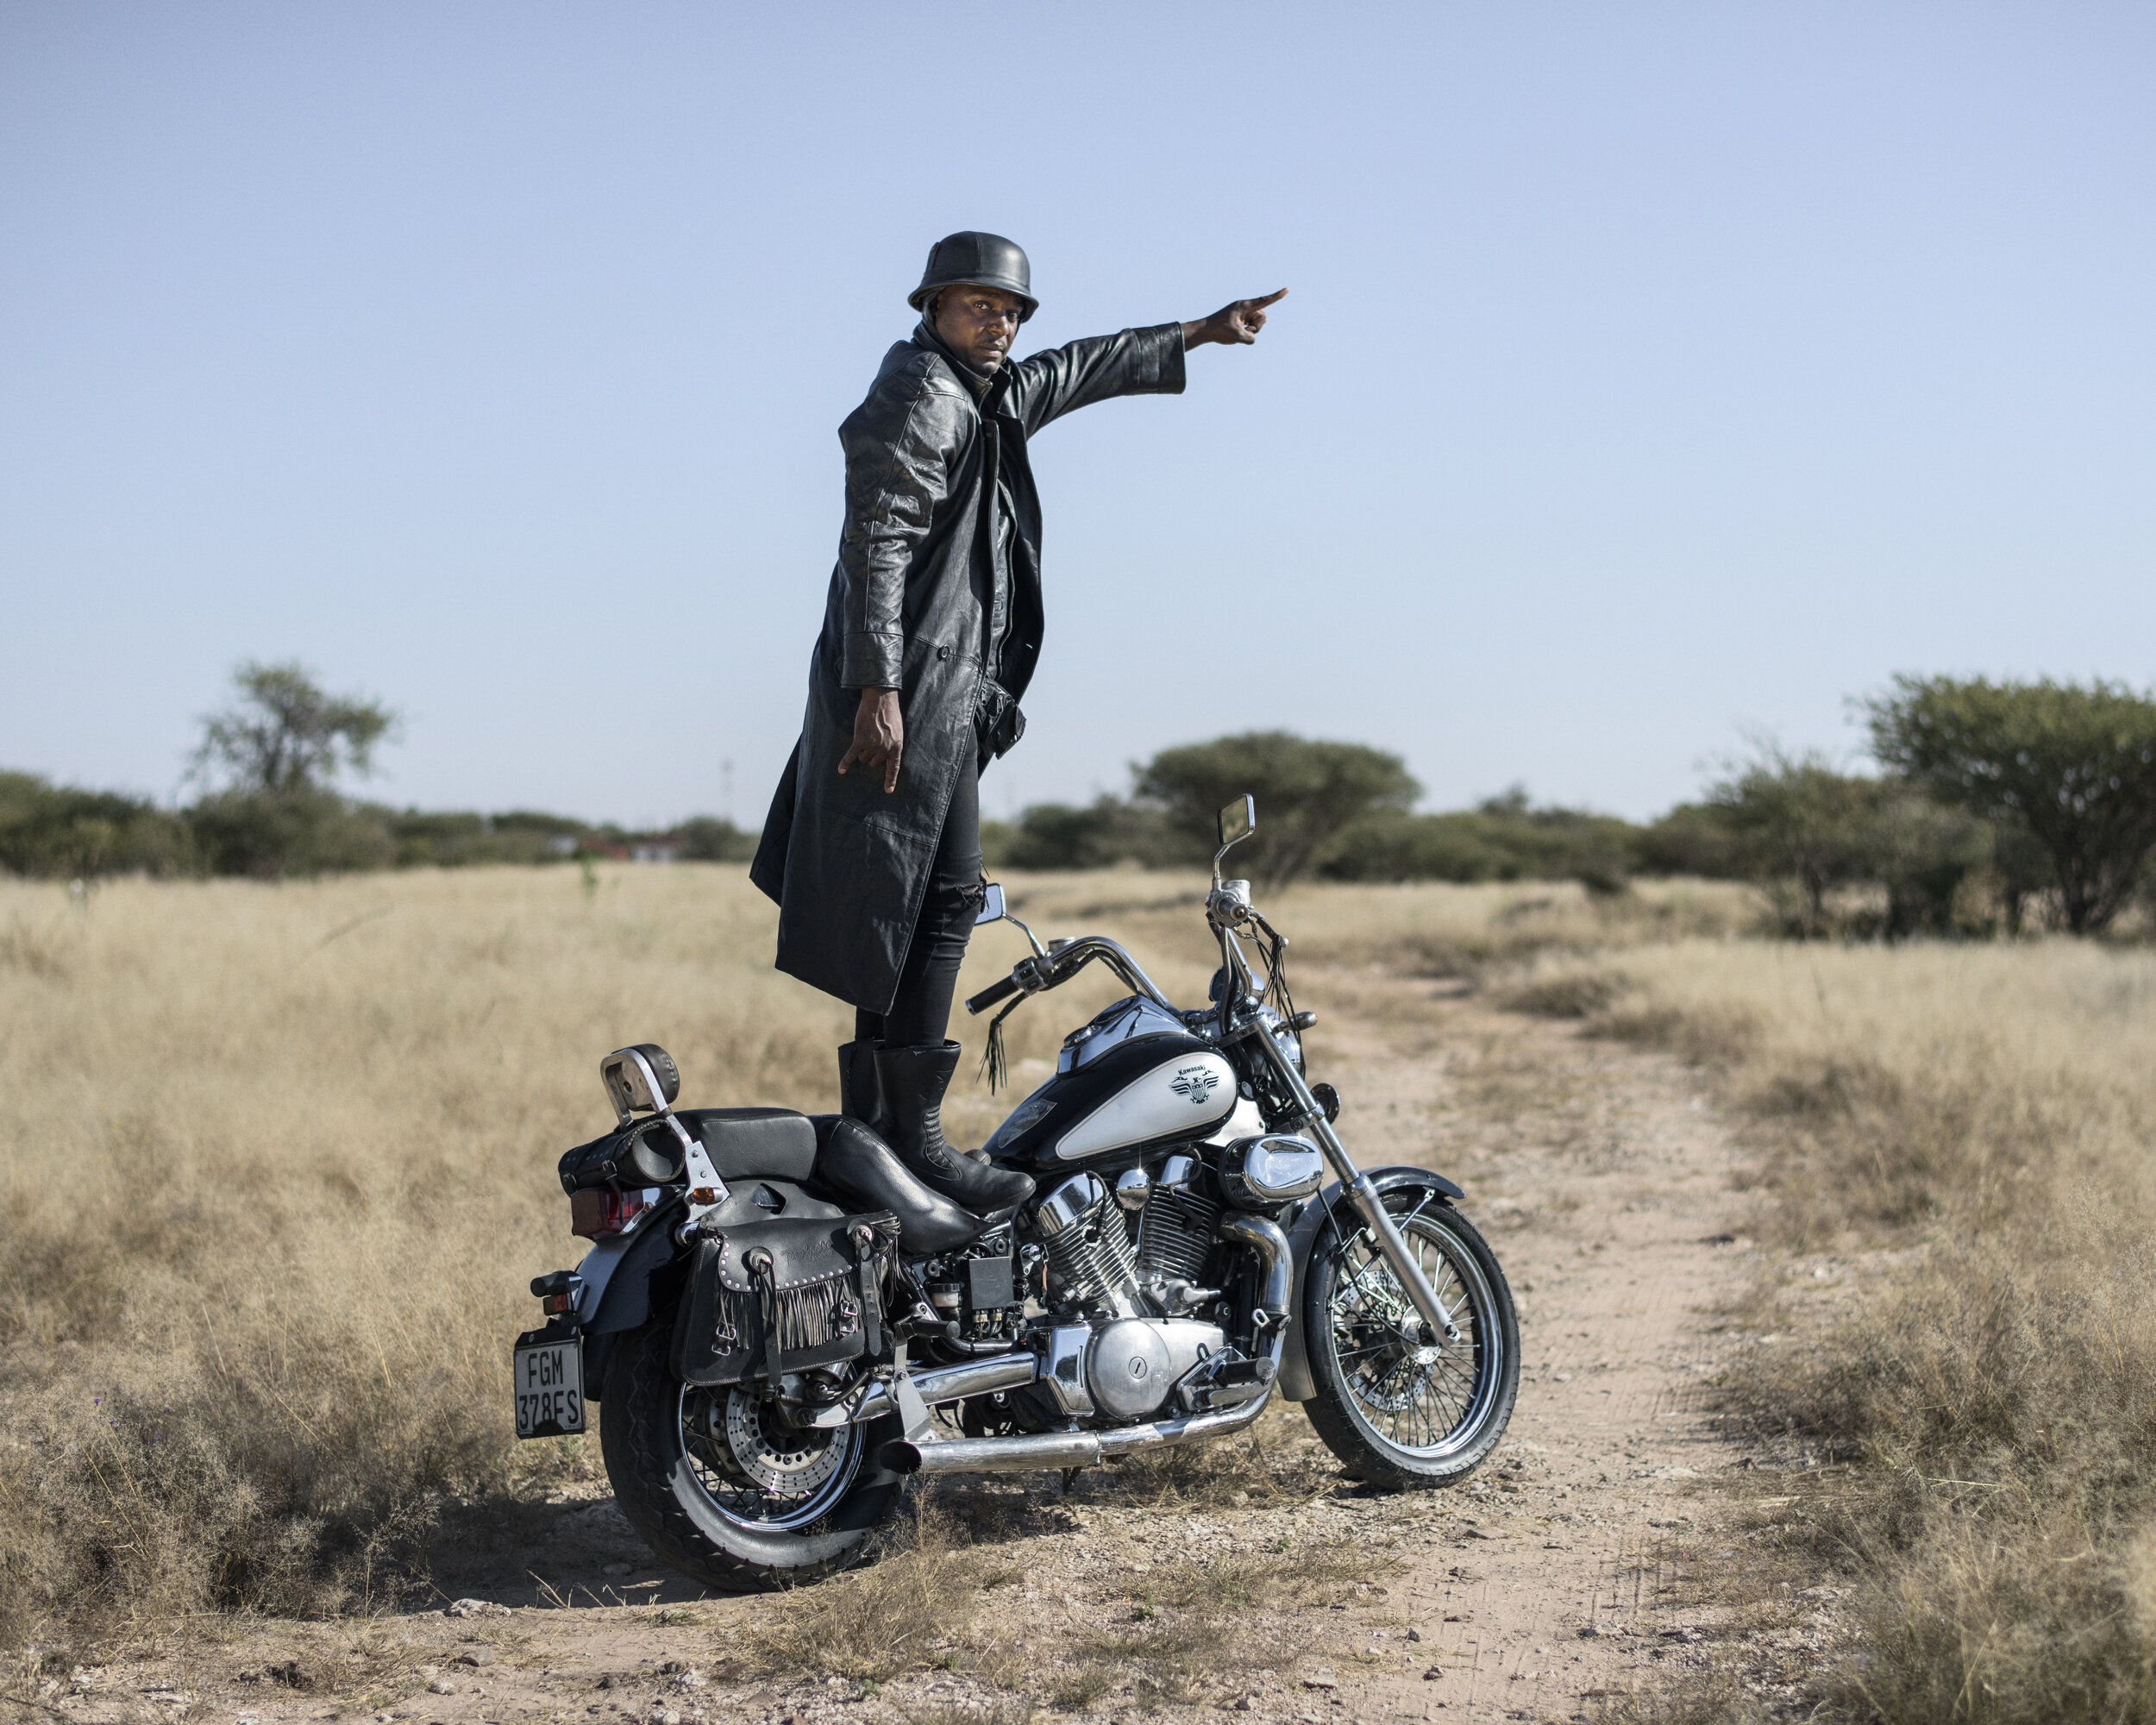 """Botswana, Ghanzi, May 2017""""Vulture"""" 32 years old Overthrust front man, bassist and lead vocalist. I am a rocker, I live for rock n roll and I´ll die a true, loyal metal warrior, anything that is not metal doesn't make sense to me, I love metal. I started listening to metal at the age of 13 years when I was in a primary school in 1998, I stayed with my uncle Dux Drug Dee, Master and my other cousins who were metal heads and always playing metal around me, I got influenced and they gave me some metal music and attire, they gave me cassettes from Cannibal Corpse, Metallica, Iron Maiden and Def Leppard, so I listened to them everyday, I completed my studies in 2007 and became a cop, I met my cousin Spencer in 2008 and we started Overthrust, I sold my motorcycle – 1100 YAMAHA, to buy basic band instruments, Suicide joined us as a drummer, I was the bassist and vocalist and Spencer the guitarist, 2010 we became very active and started attending shows, Godfather and Dawg joined us in 2011 and 2013 respectively.Pep Bonet / NOOR"""